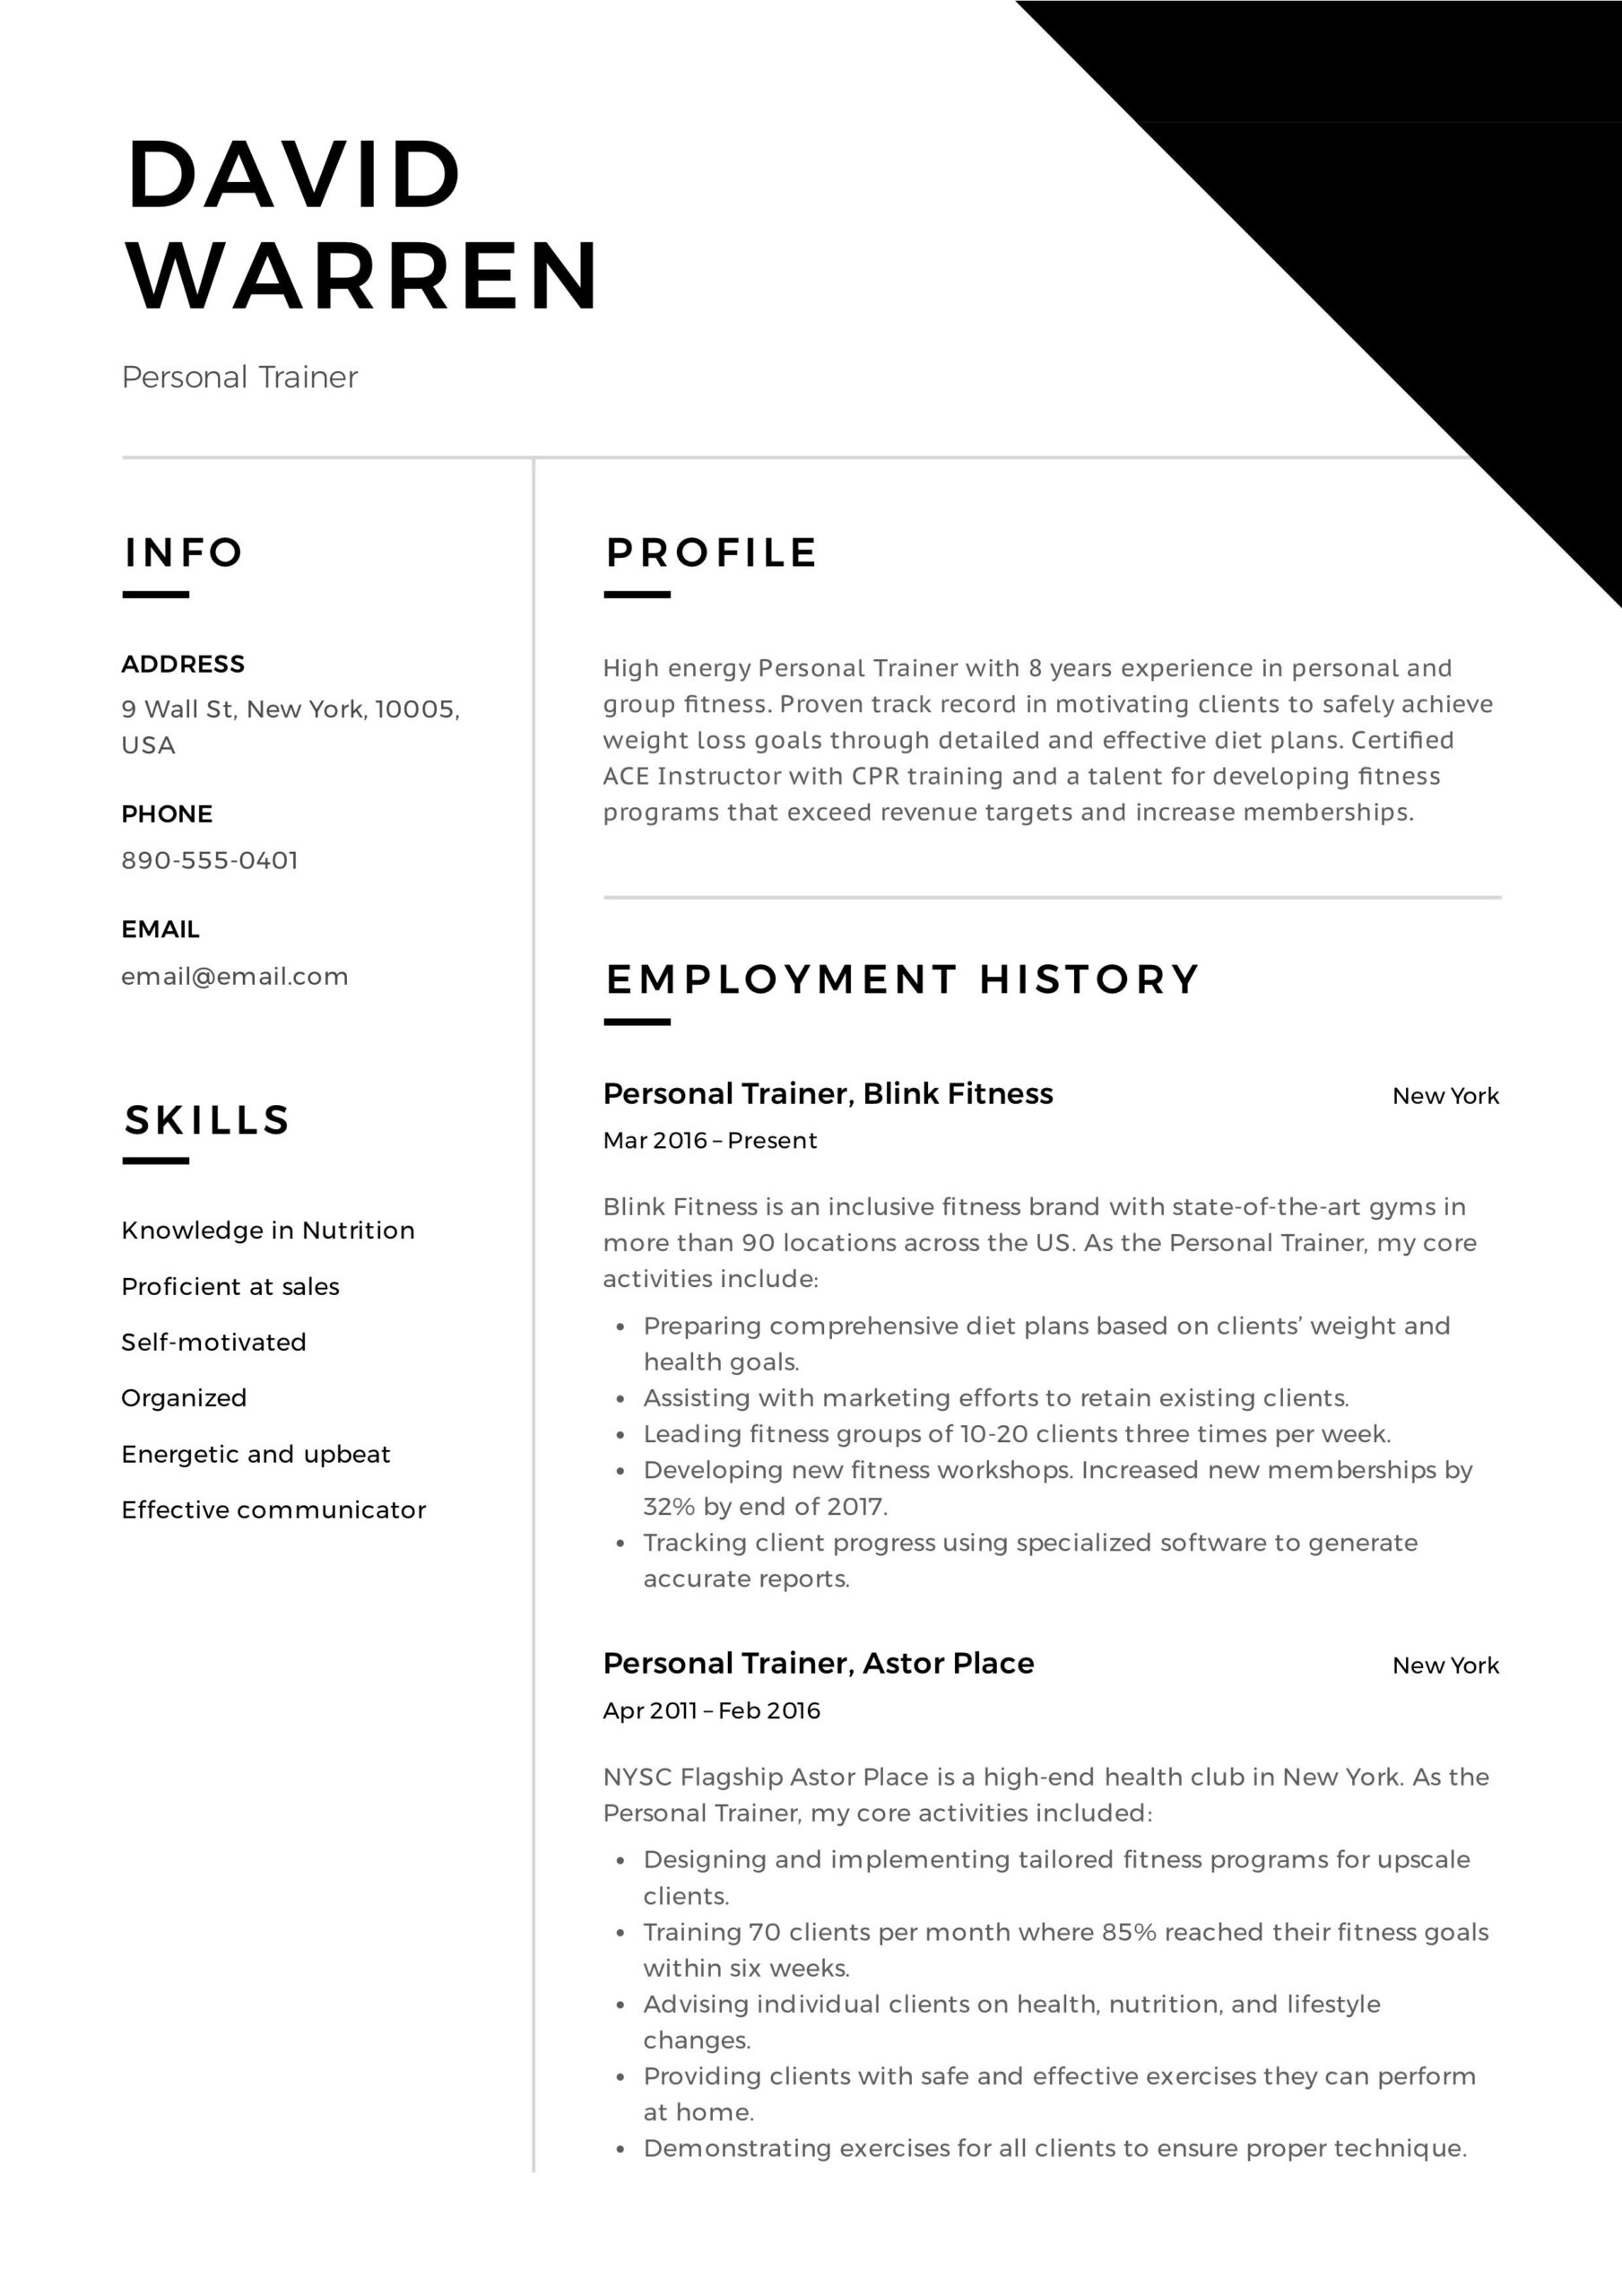 personal trainer resume event planner professional examples example scheduling Resume Personal Trainer Resume Example